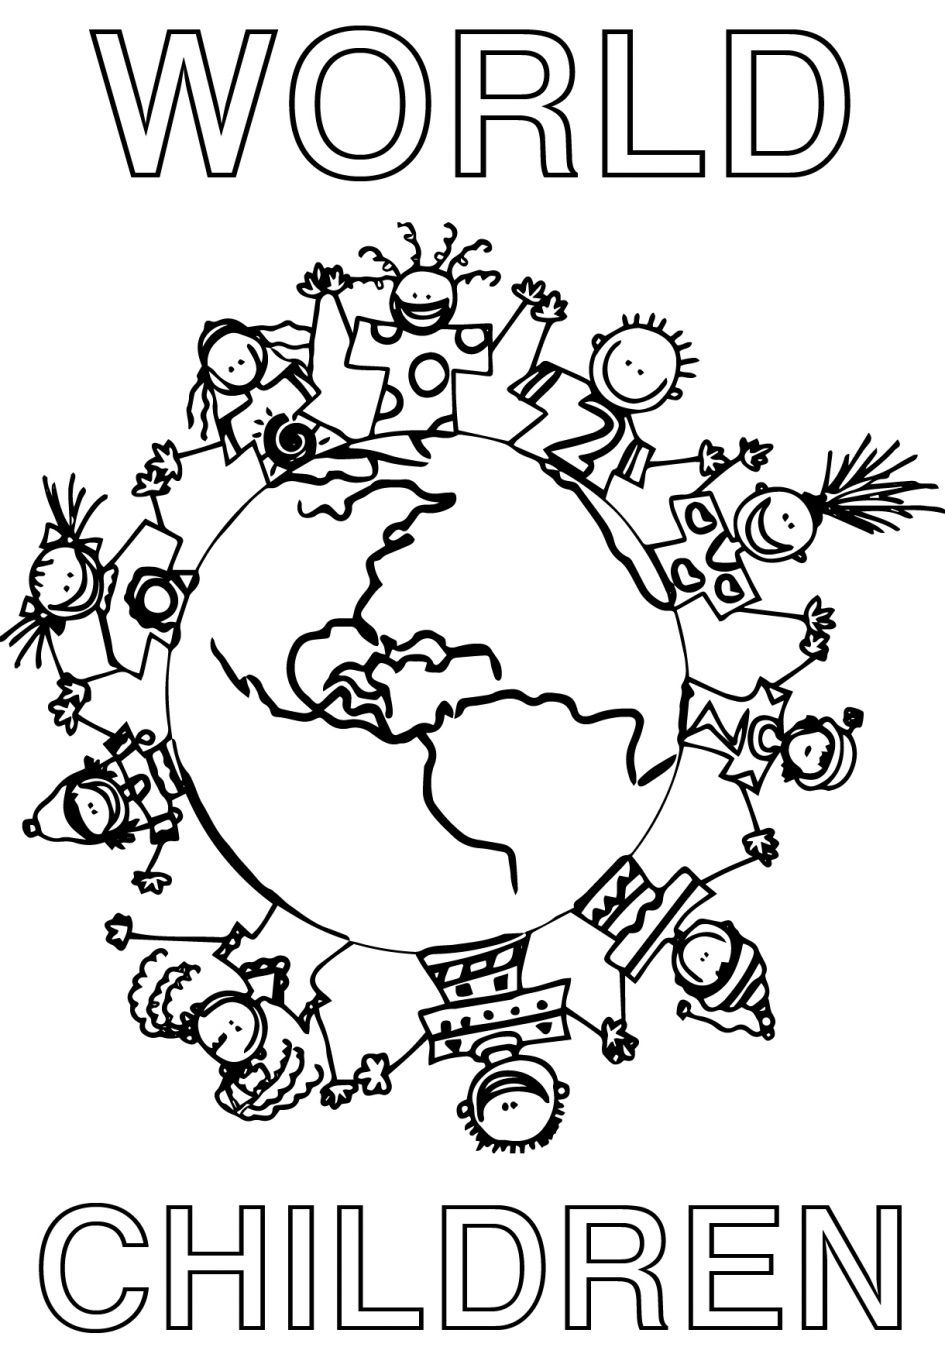 Children Holding Hands Around World Coloring Page Cute Within